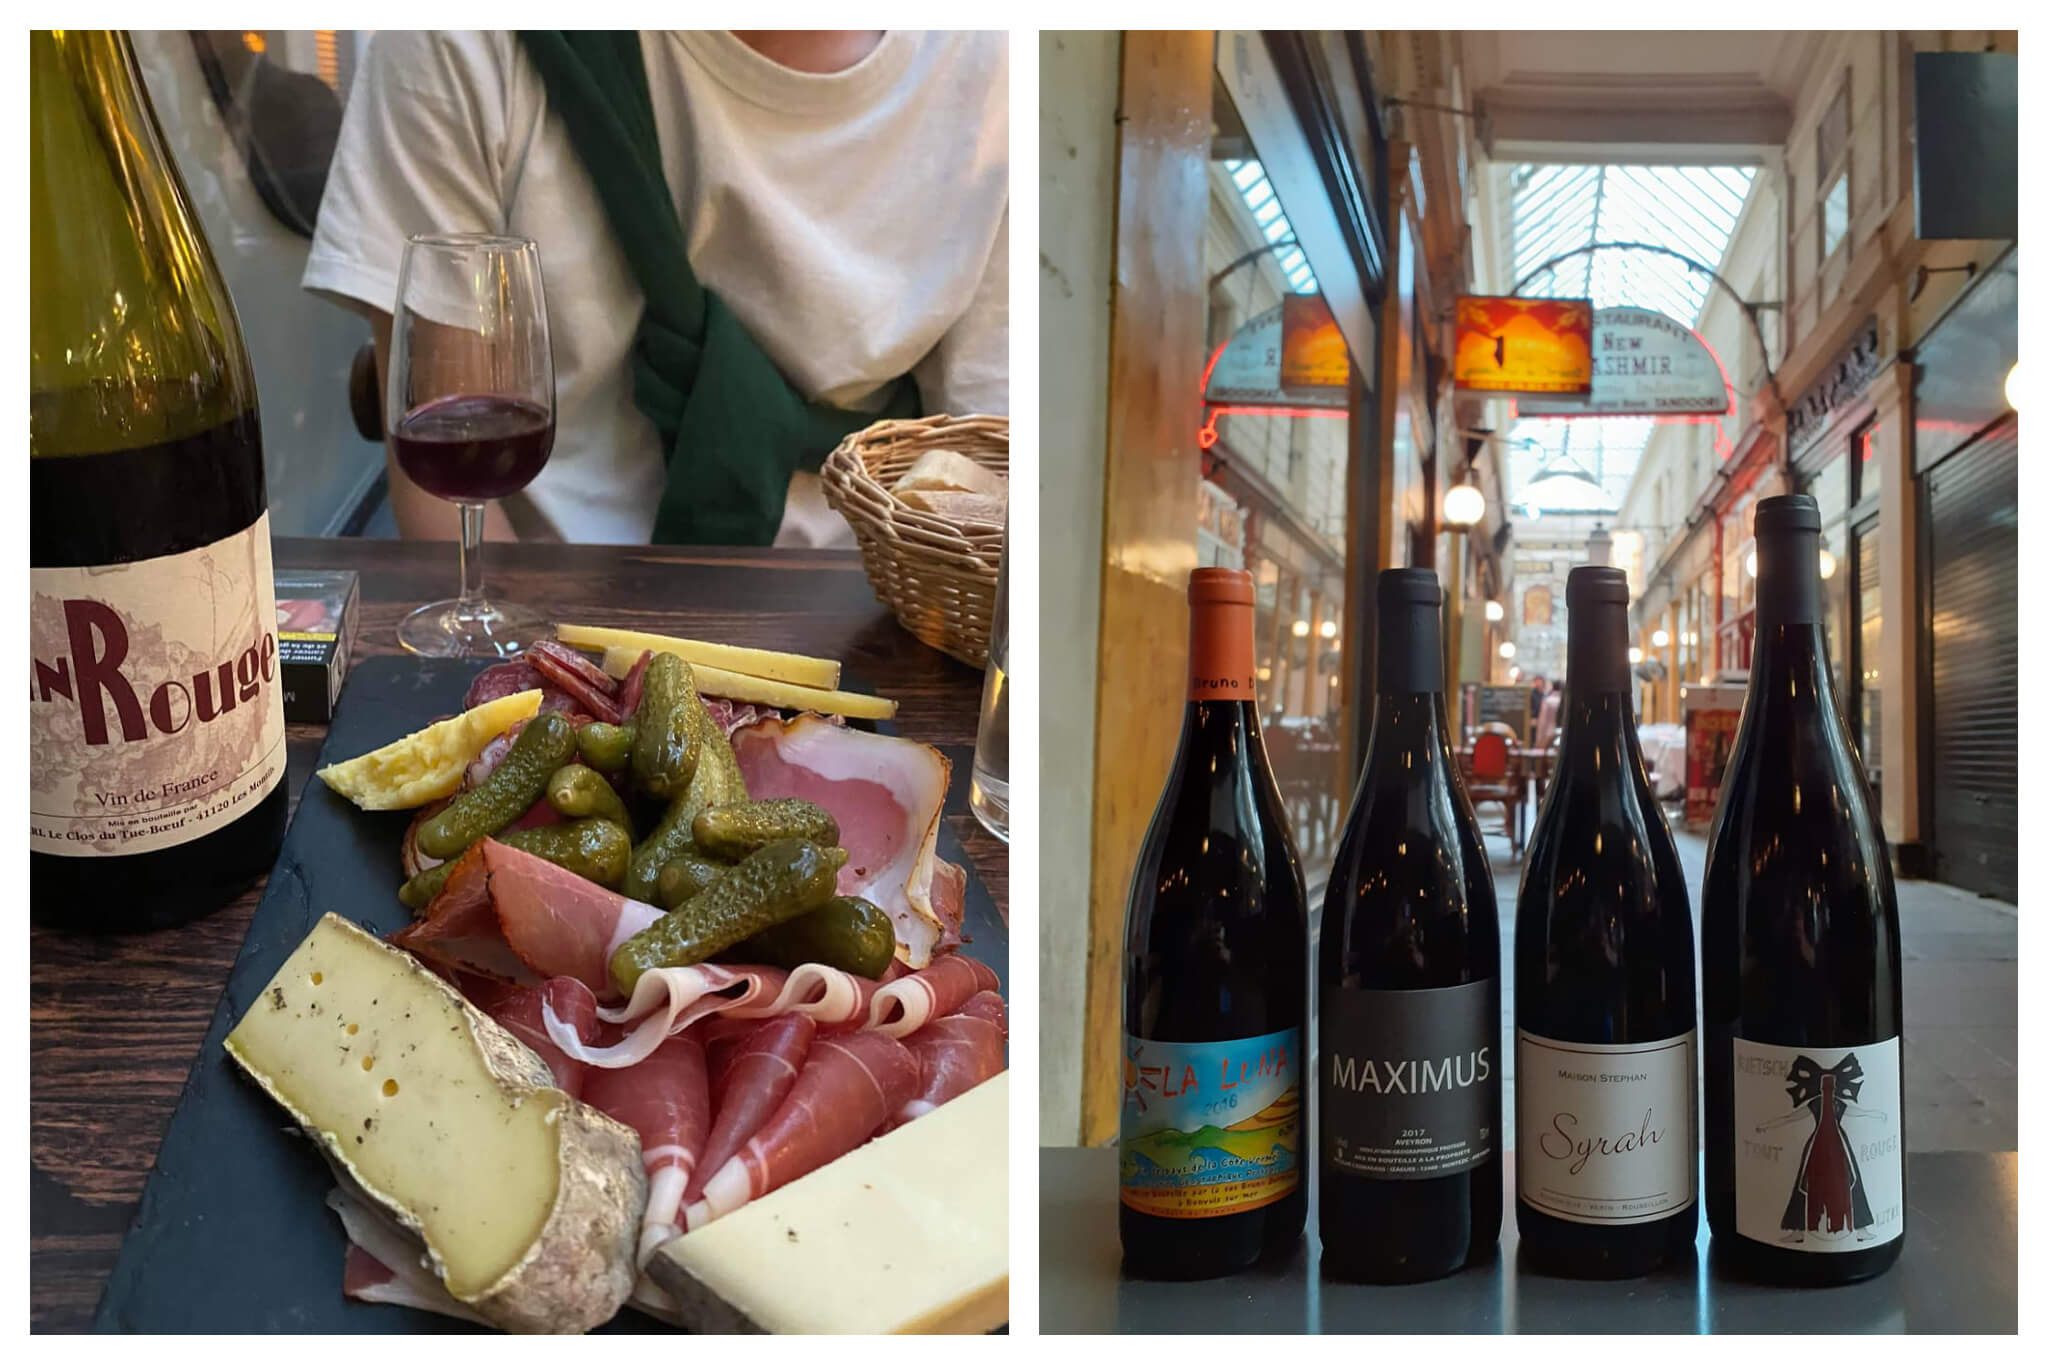 Left: A charcuterie plate of different cheeses, hams and pickles sat on a wooden table with a bottle and glass of red wine sat to the left.  Right: 4 bottles of wine sat on a bar inside a traditional Paris passage.